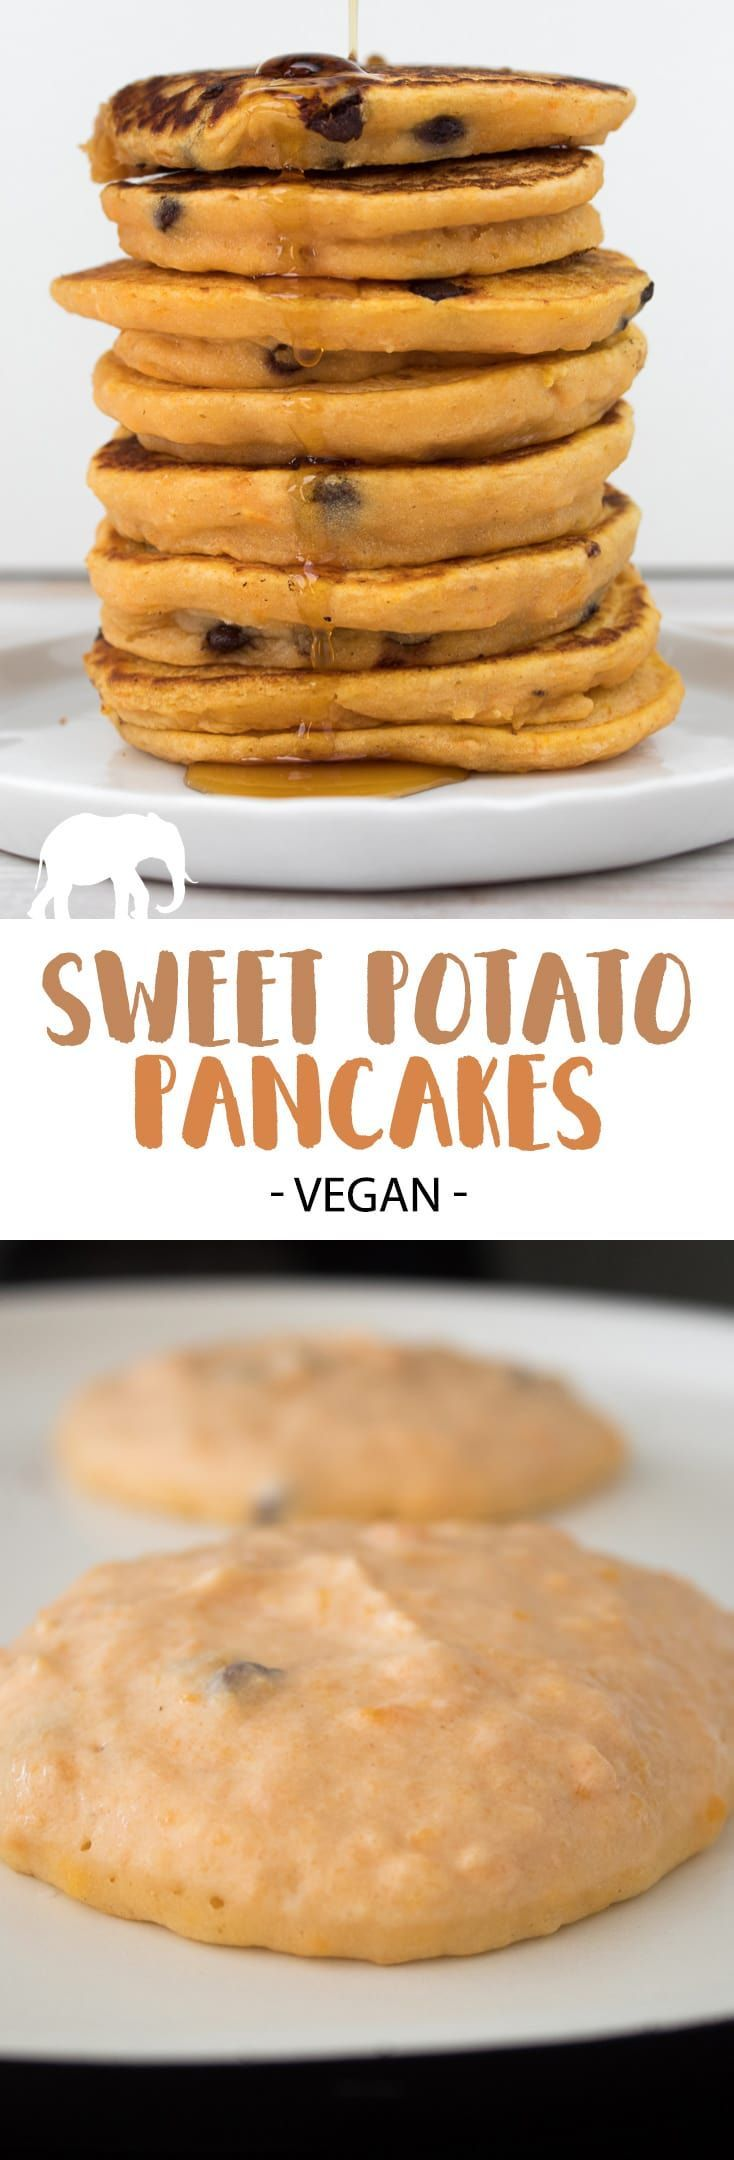 Recipe for delicious, fluffy Vegan Sweet Potato Pancakes with chocolate chips. No eggs. No dairy. It's the perfect fall breakfast! | ElephantasticVega...